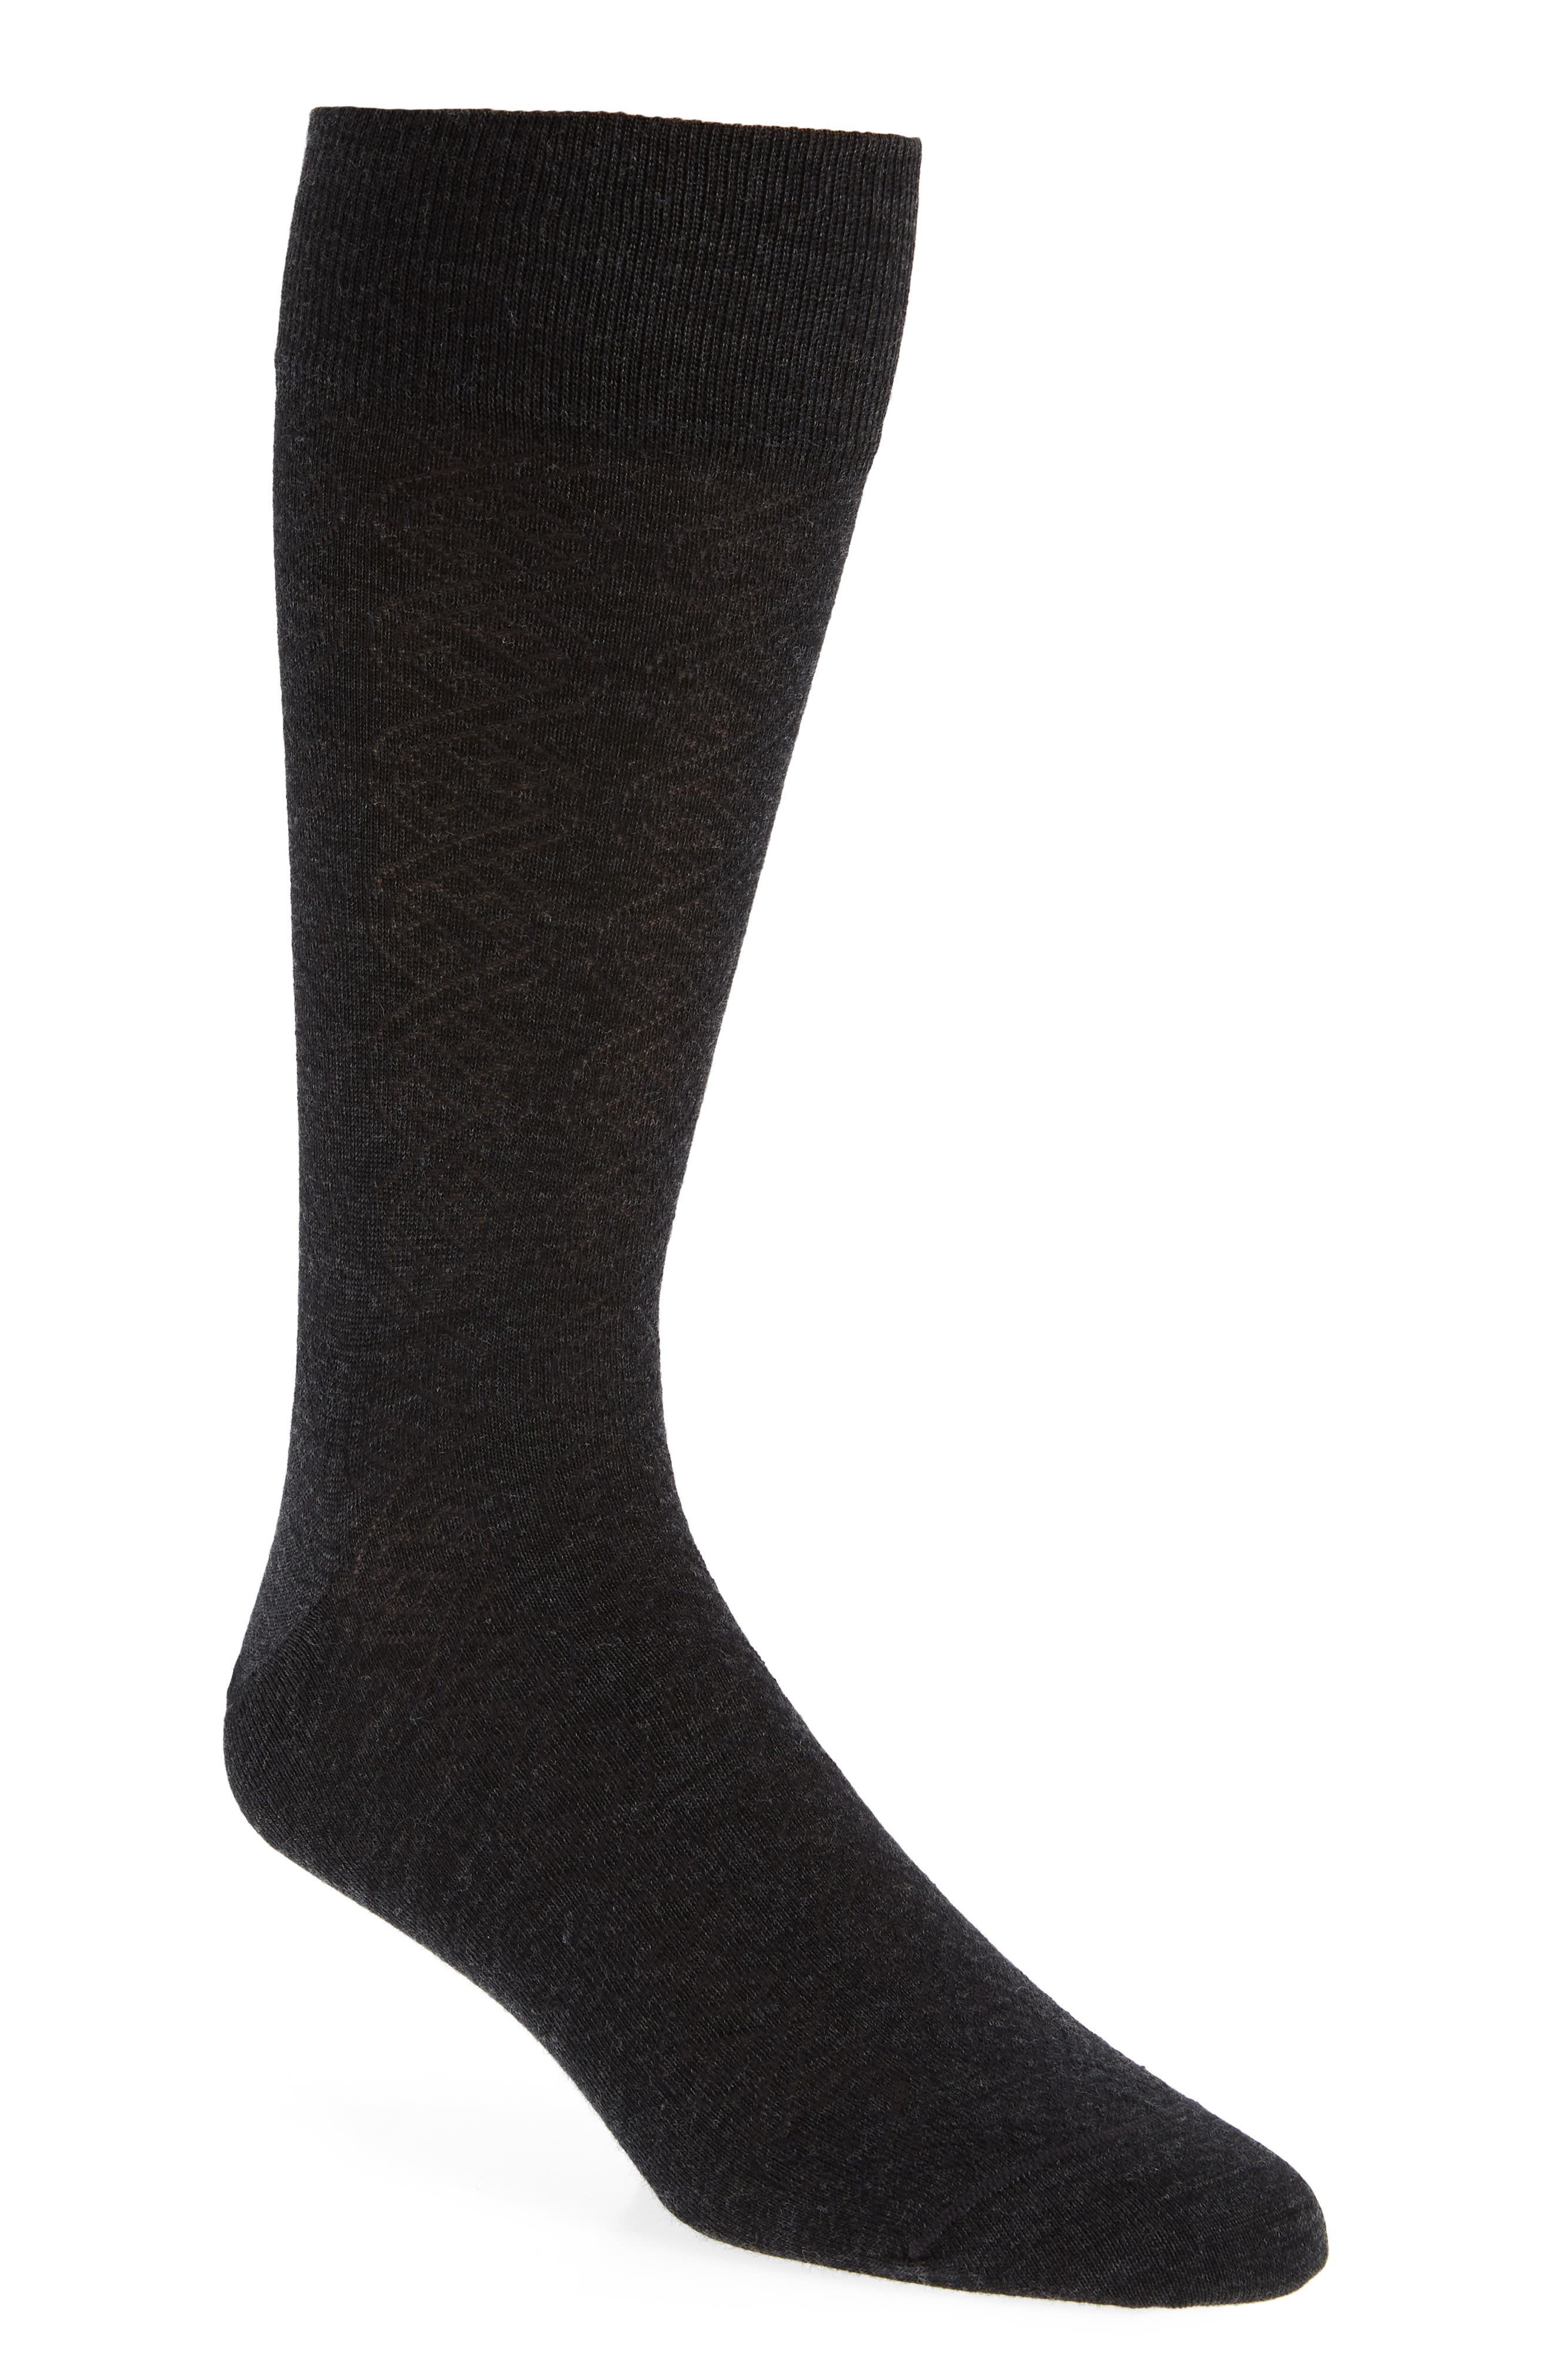 Cable Merino Wool Blend Socks,                             Main thumbnail 1, color,                             CHARCOAL HEATHER